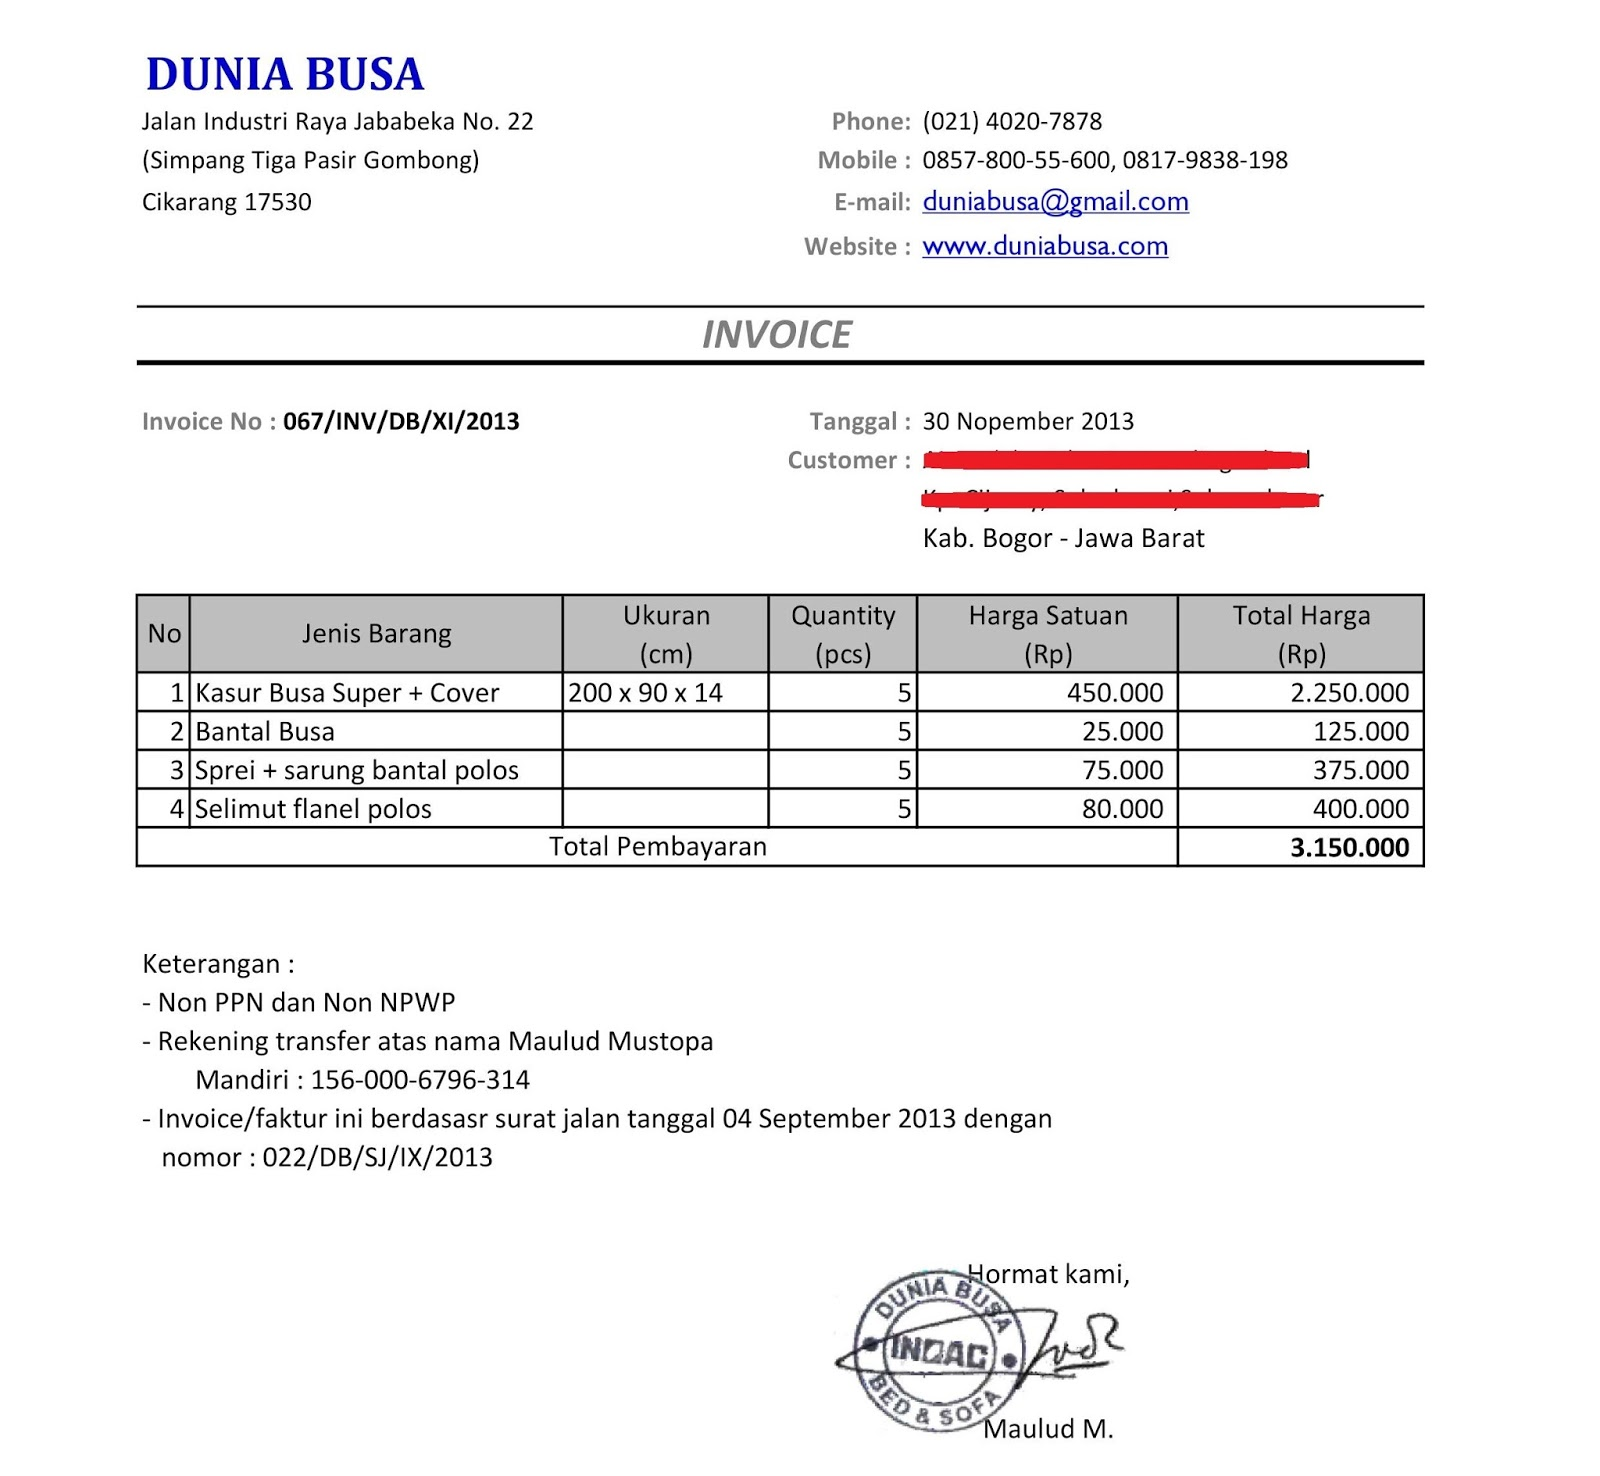 Ebitus  Unique Free Invoice Online  Create Invoice Online  Invoice Template  With Fascinating Contoh Format Invoice Atau Surat Tagihan  Brankas Arsip  Free Invoice Online With Endearing Invoice Blank Form Also Consulting Invoice Templates In Addition Ebay Invoices For Sellers And Nissan Rogue Invoice As Well As Invoice Versus Msrp Additionally Find Out Invoice Price Of Car From Sklepco With Ebitus  Fascinating Free Invoice Online  Create Invoice Online  Invoice Template  With Endearing Contoh Format Invoice Atau Surat Tagihan  Brankas Arsip  Free Invoice Online And Unique Invoice Blank Form Also Consulting Invoice Templates In Addition Ebay Invoices For Sellers From Sklepco